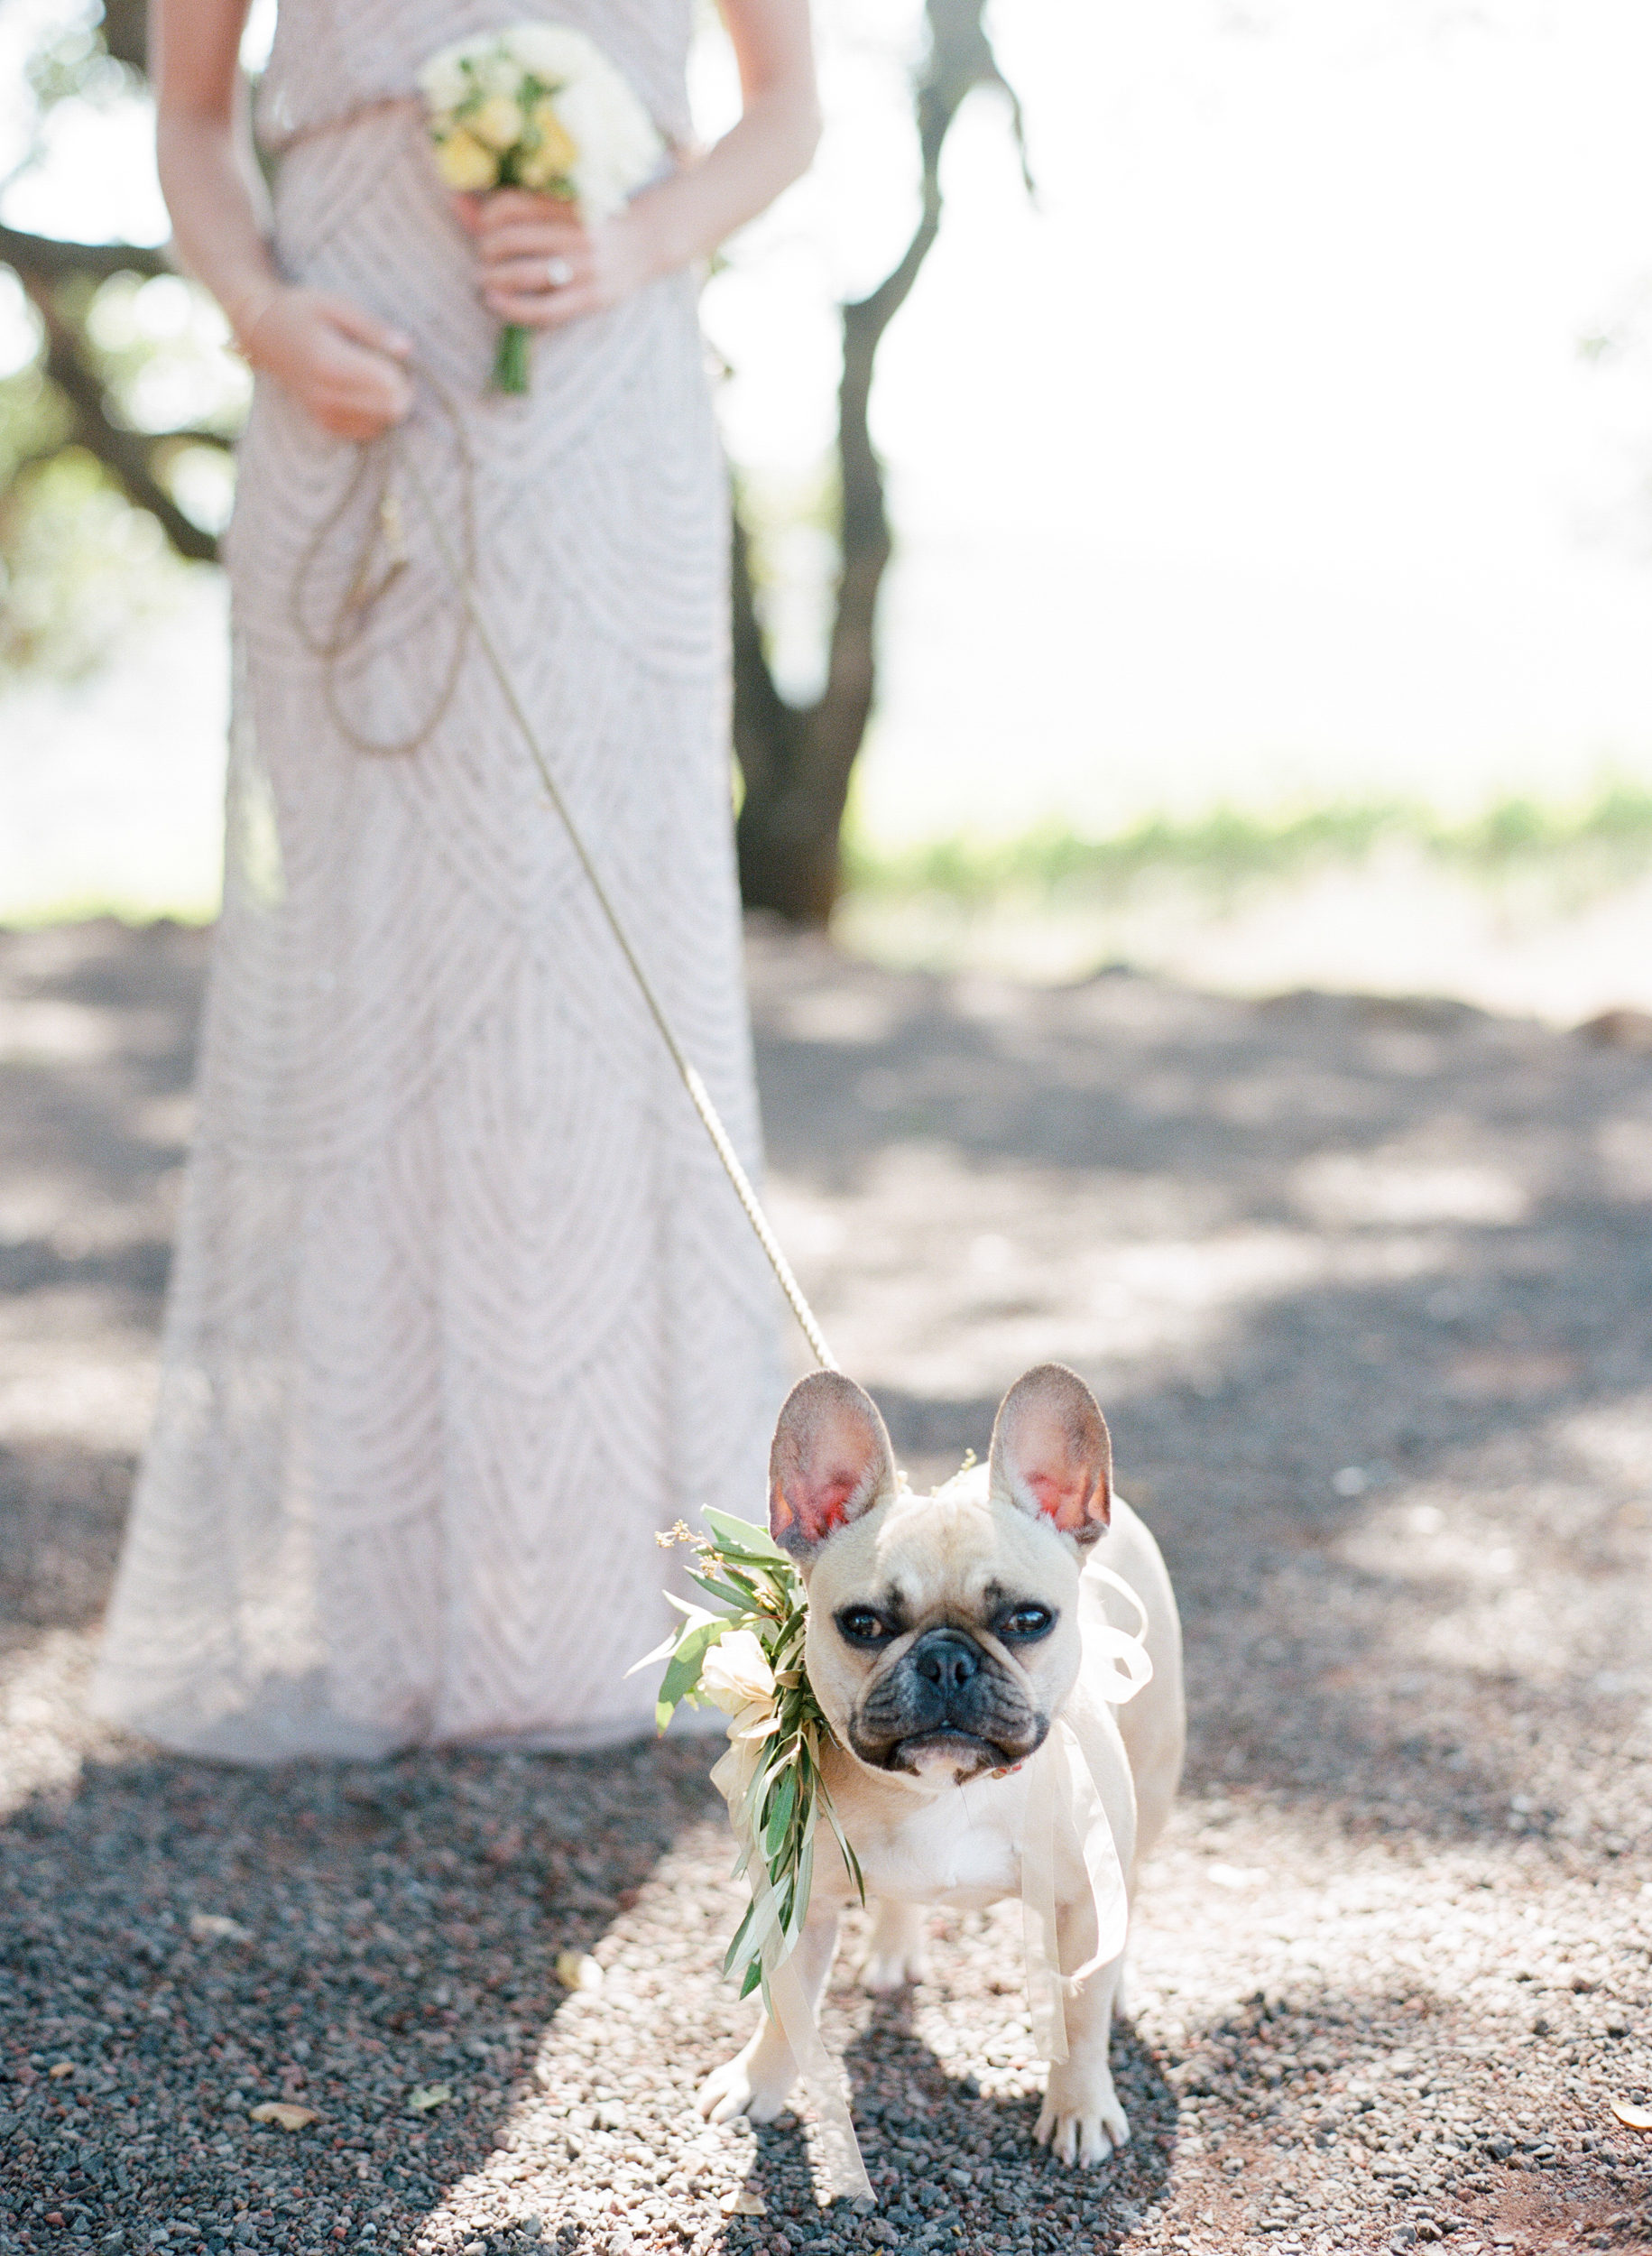 The couple's French bulldog is a part of the ceremony too, wearing a floral, ribbon collar; photo by Sylvie Gil